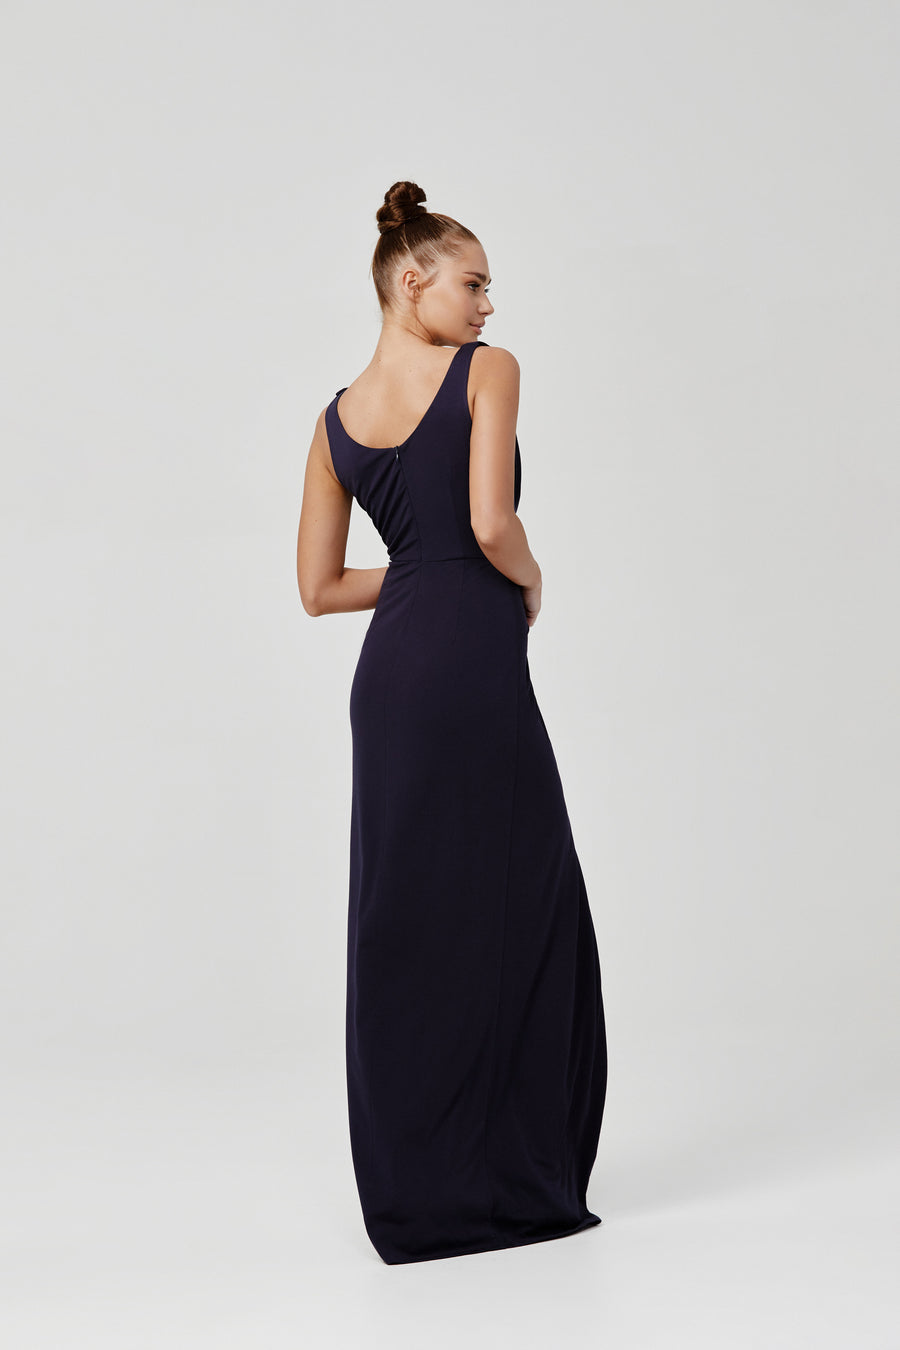 Naida Dress - Navy